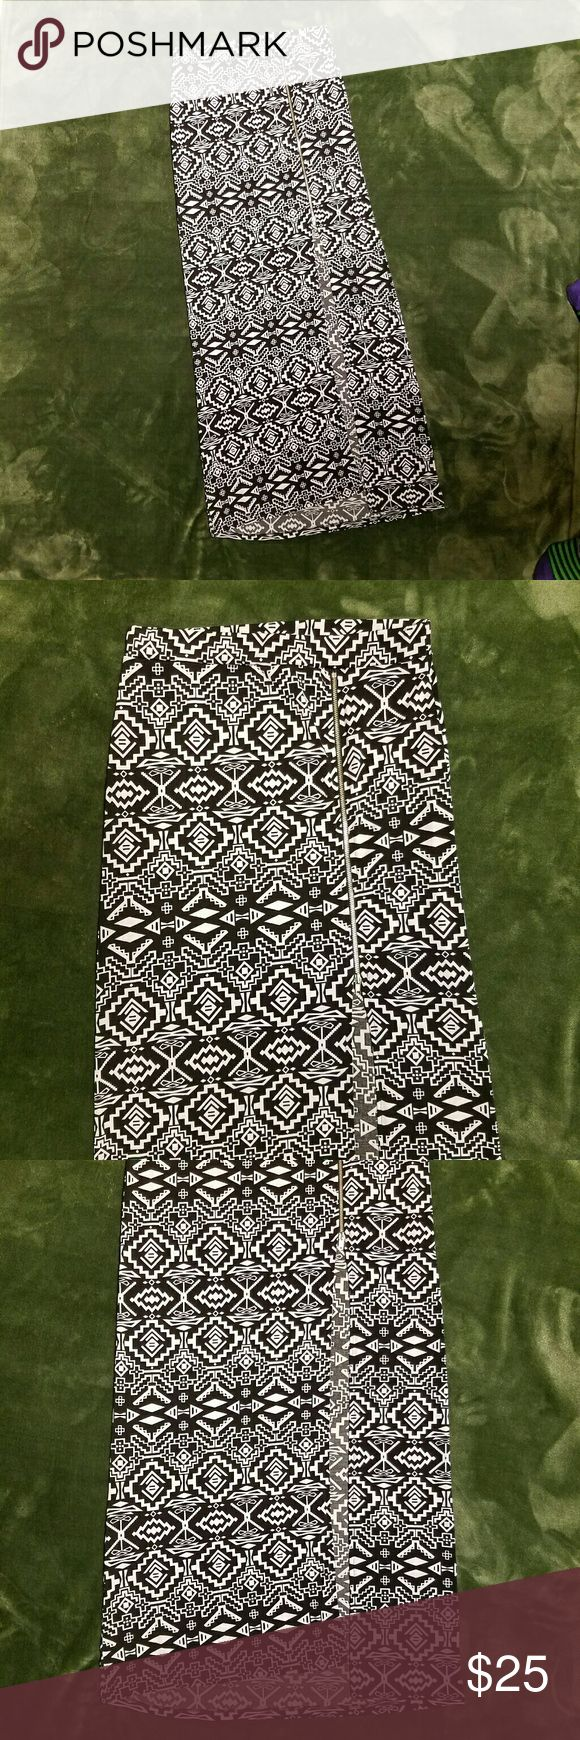 """Sexy Charlotte Russe Bodycon Tribal Maxi Skirt M Sexy Charlotte Russe Bodycon Black White Geometric Abstract Maxi Skirt.  Exposed silver Zipper.  Zipper Stops just above knees.  Tribal geometric print in black and white.   Polyester spandex blend. Hand wash Line dry. Sz M Measures 26"""" waist unstretched to 36"""" stretched,  32"""" hips unstretched,  38"""" overall length. Charlotte Russe Skirts Maxi"""